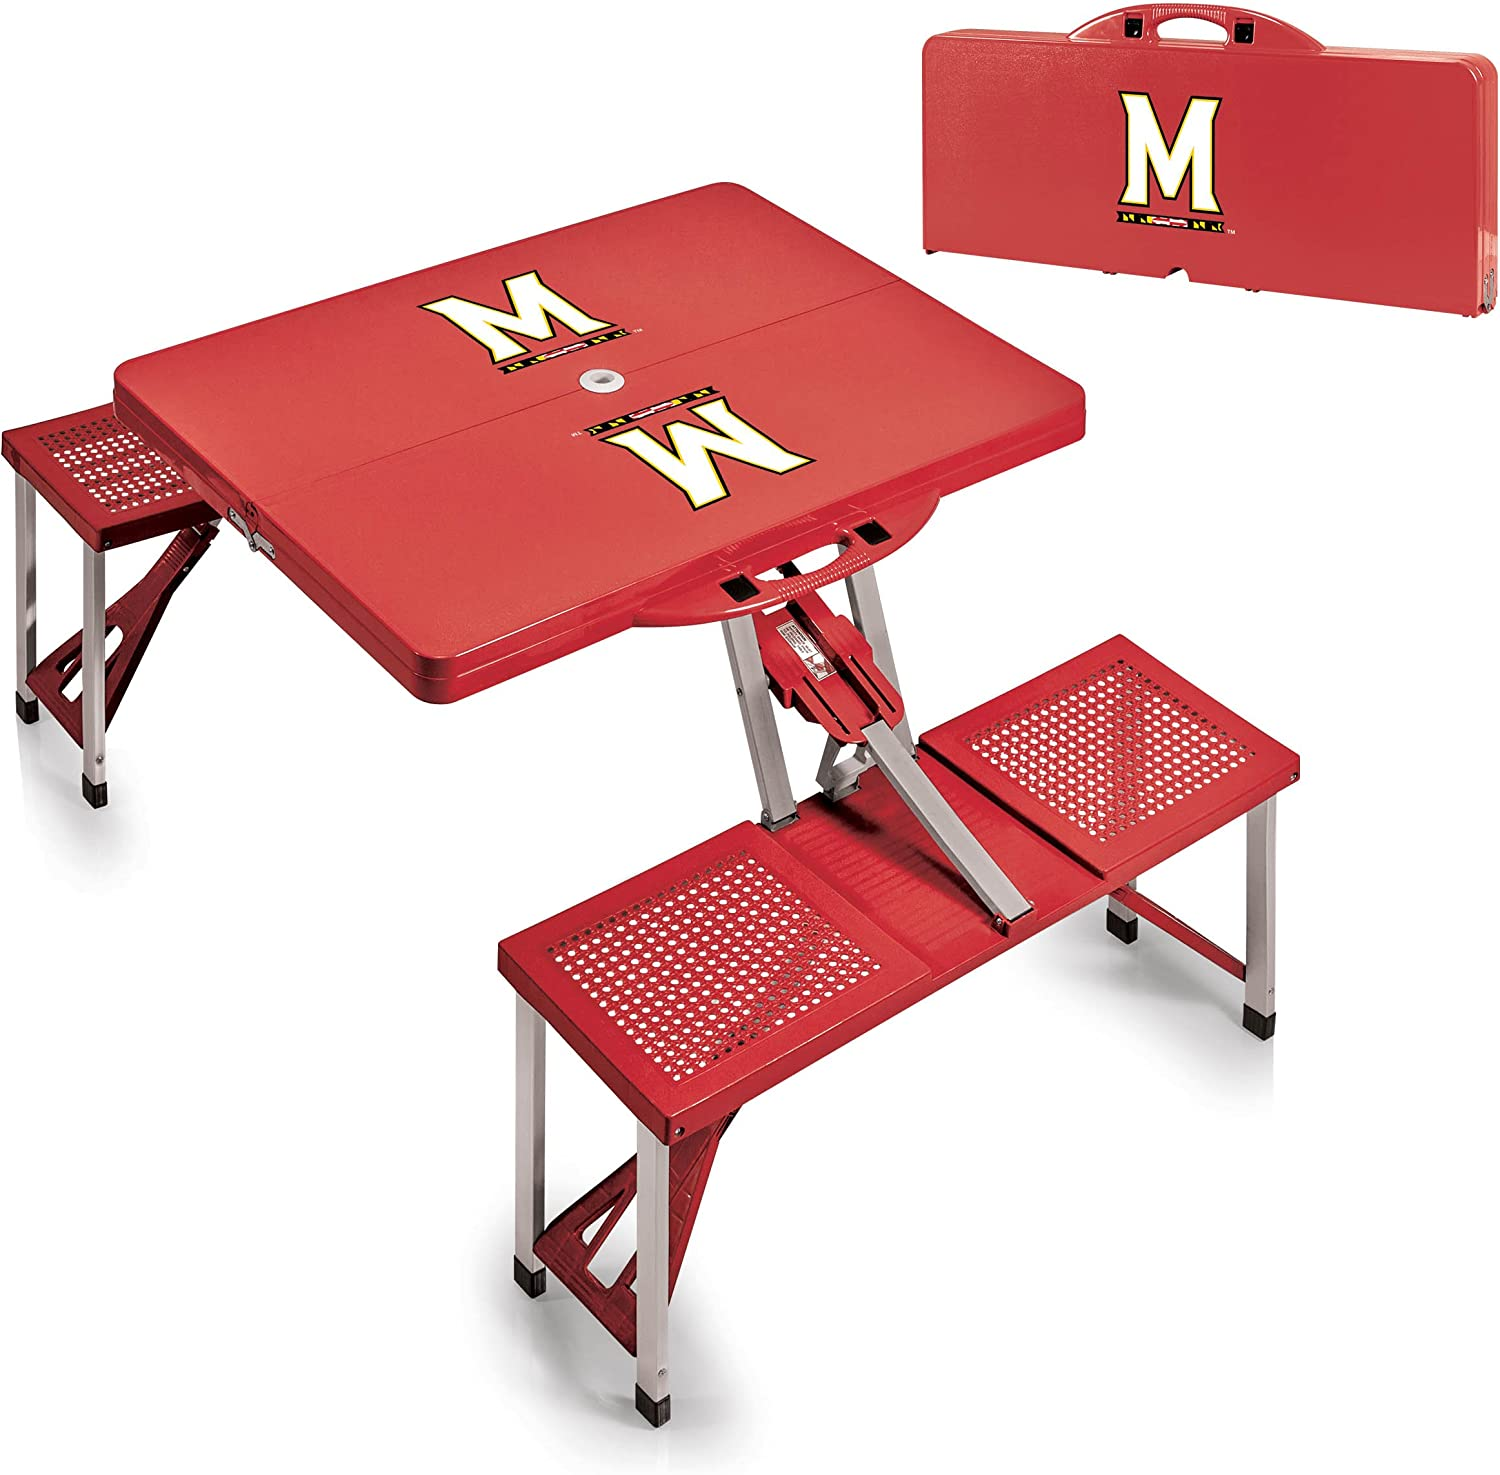 Picnic Time Folding Table Maryland Terrapins